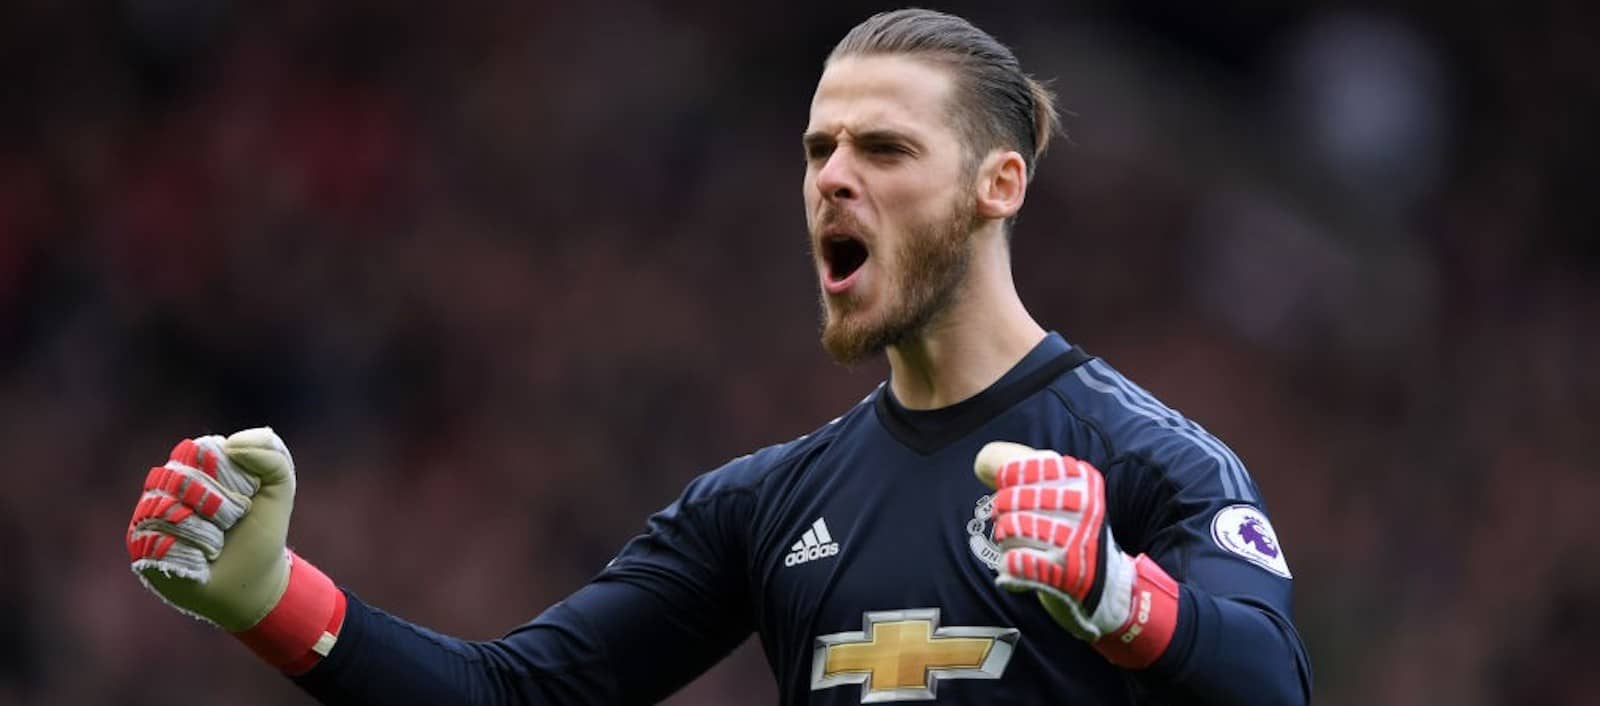 David de Gea 'happy to commit future' to Manchester United – report